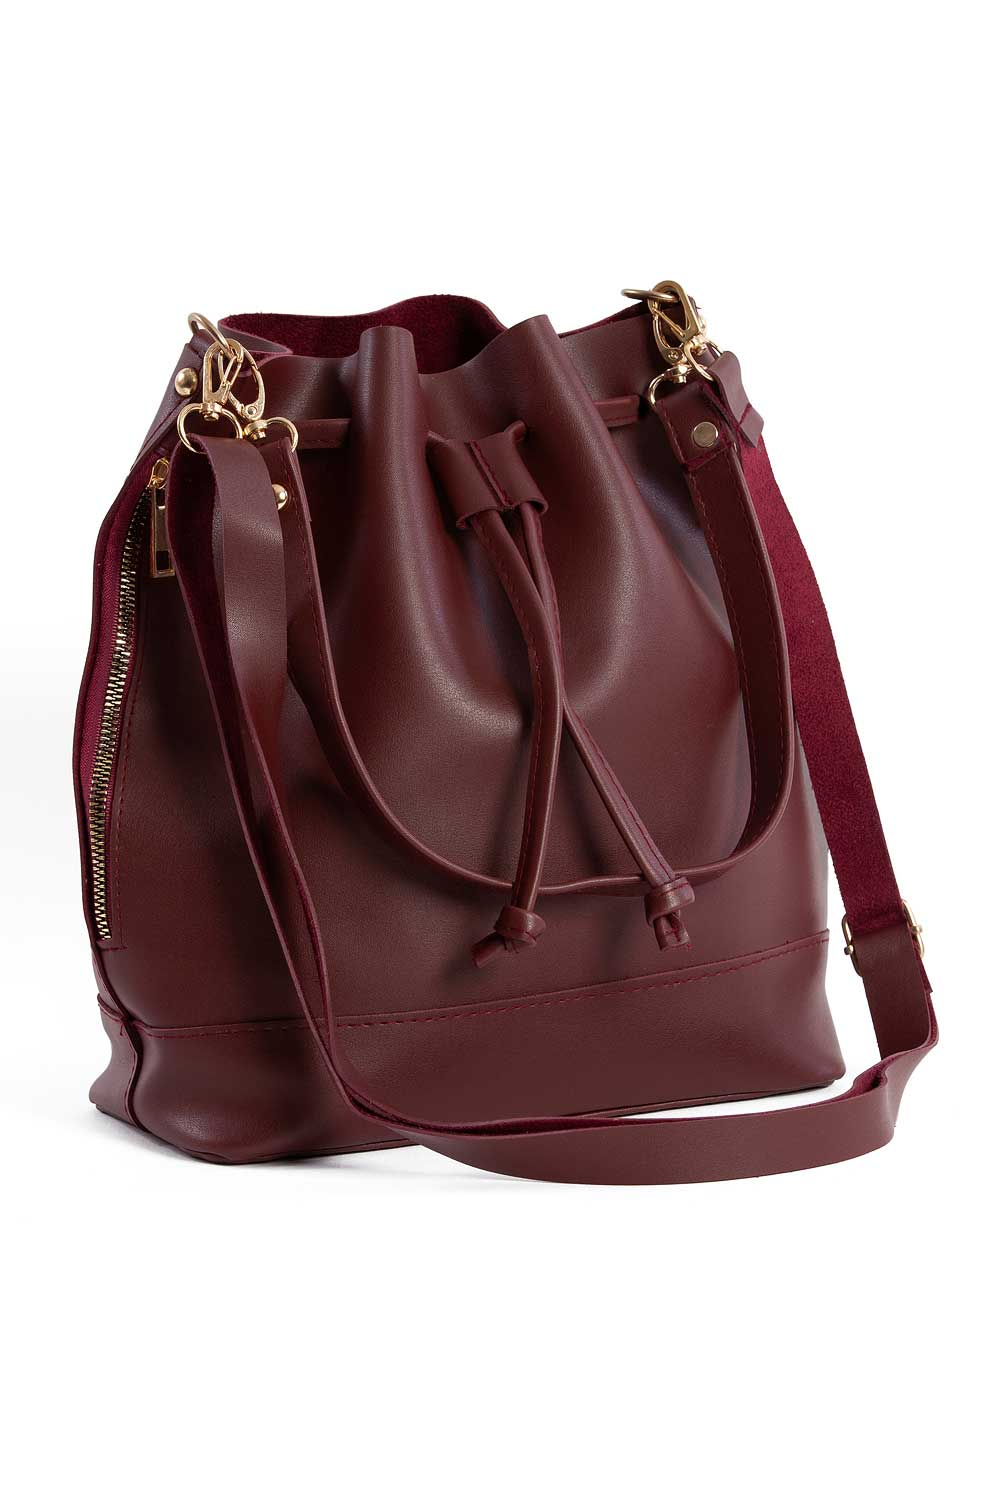 MIZALLE Drawstring Hand And Shoulder Bag (Claret Red) (1)